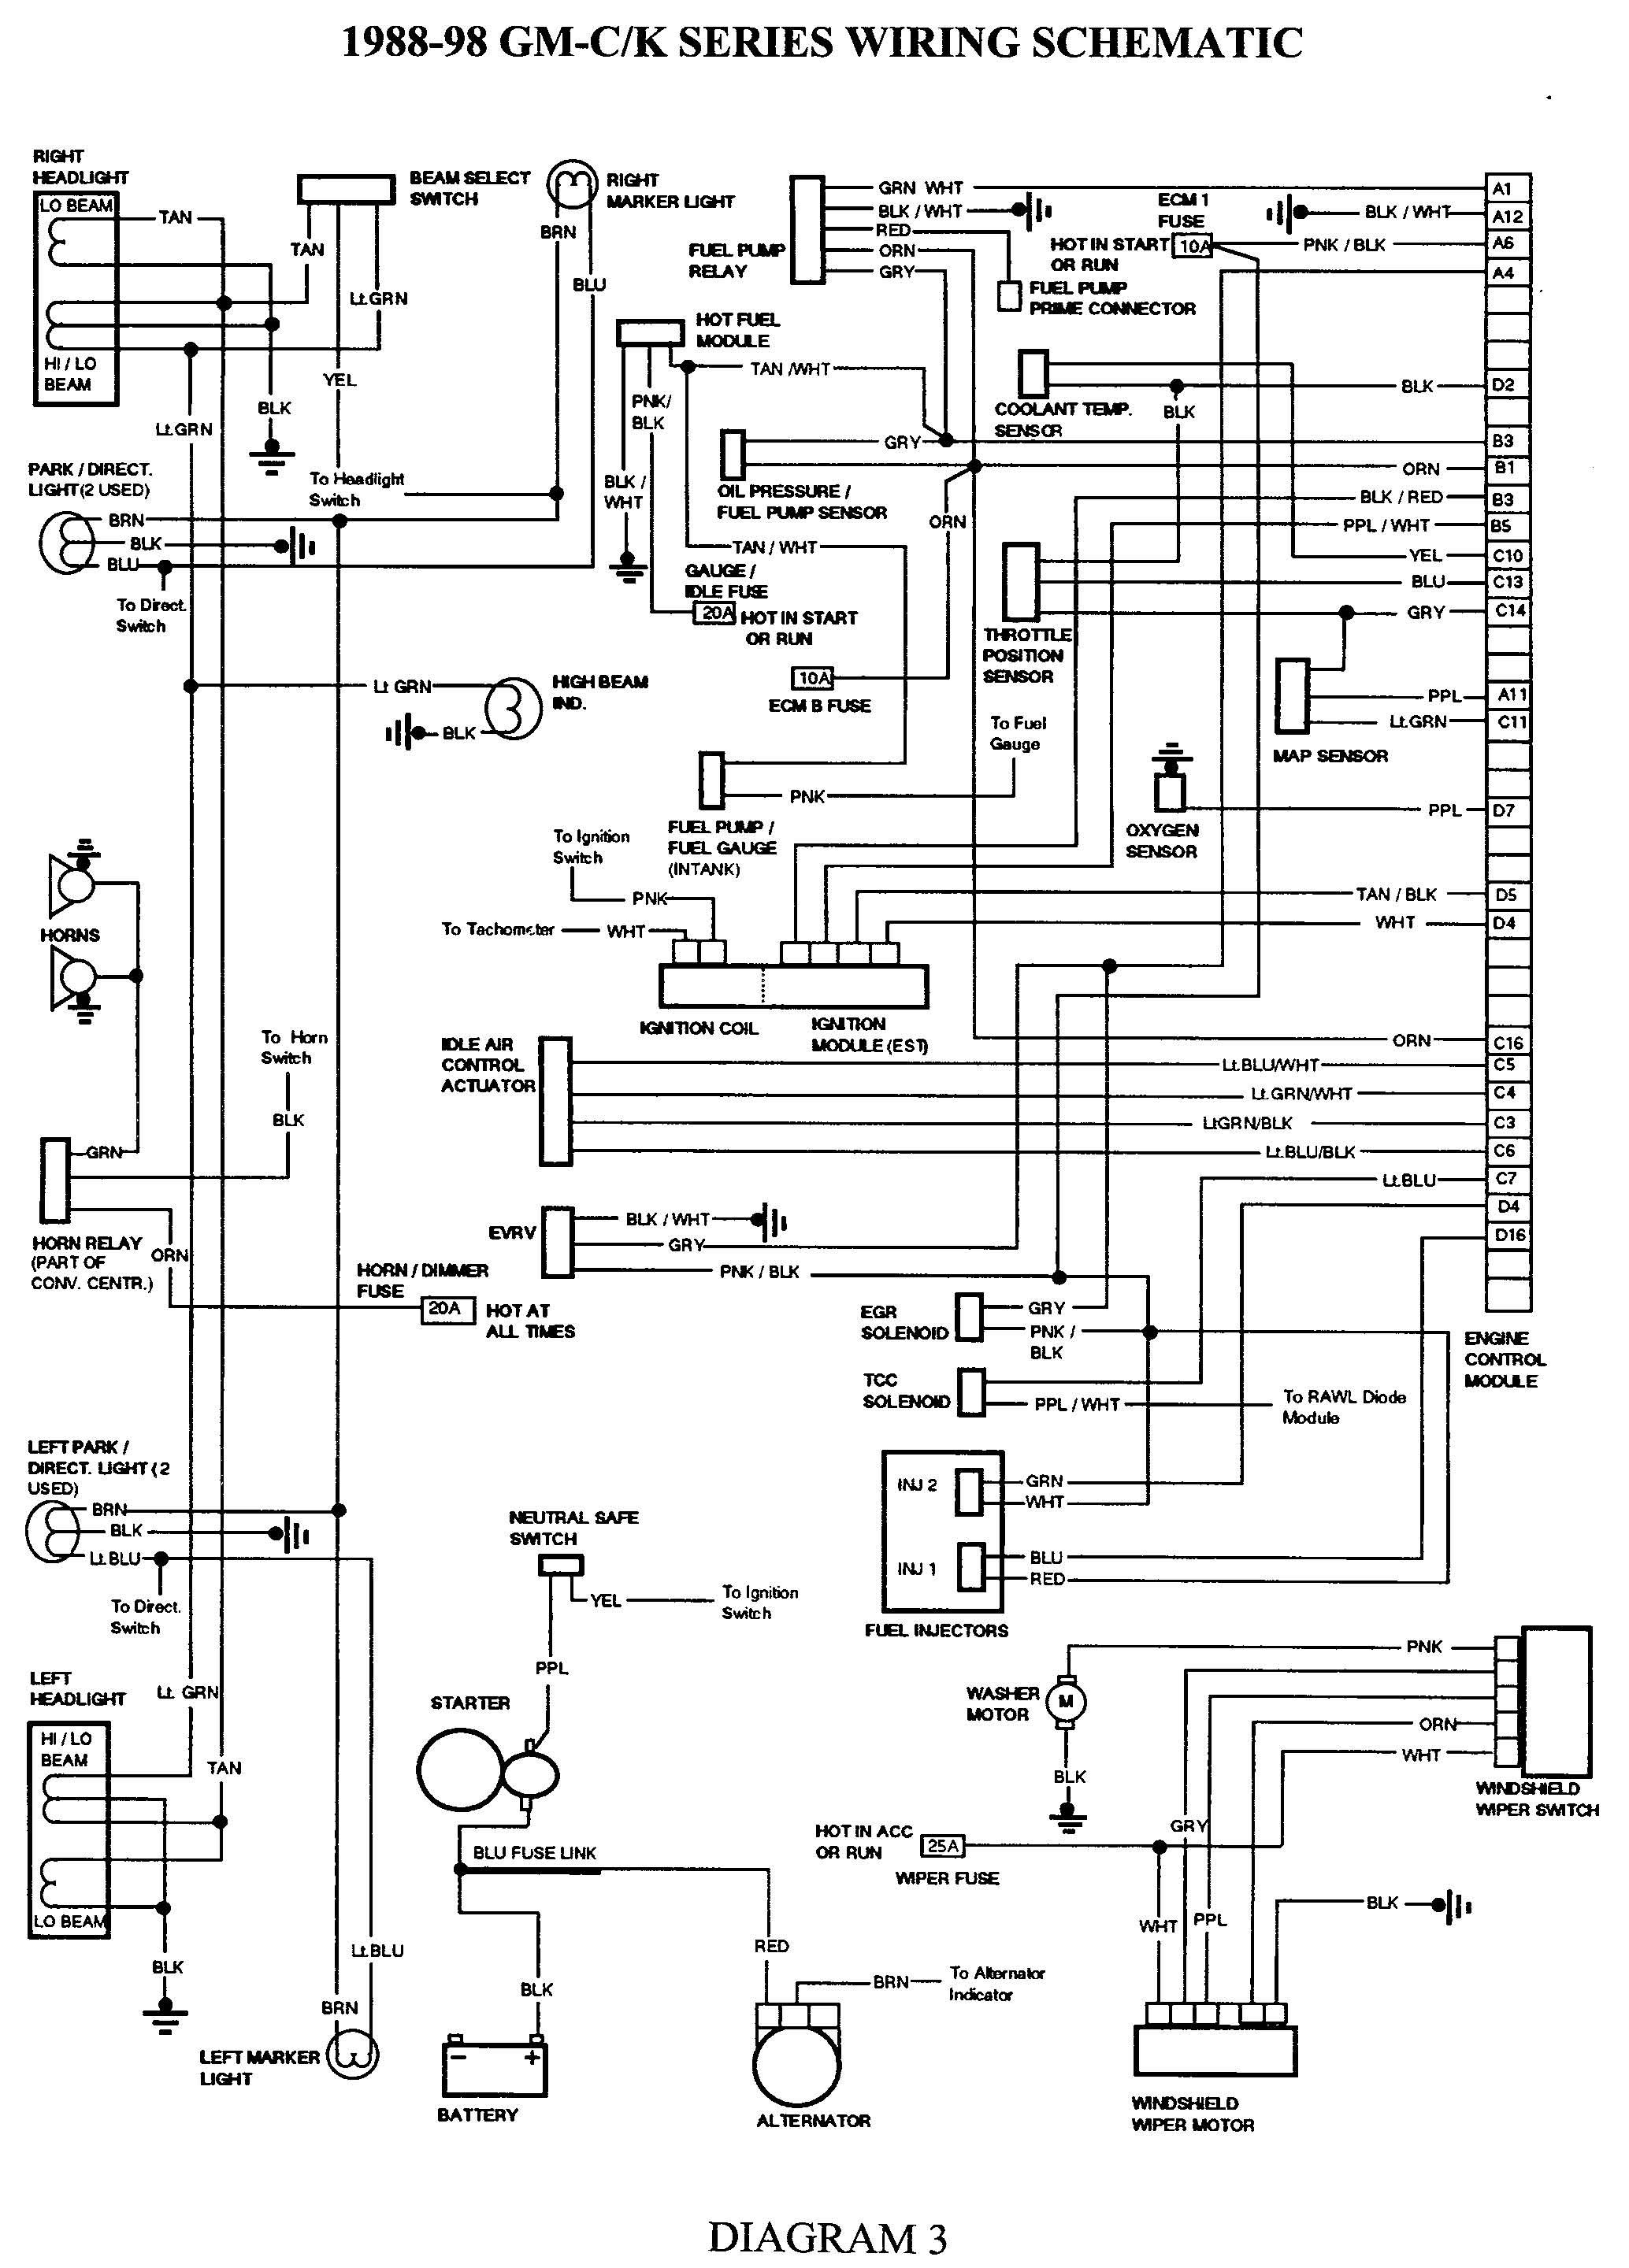 gmc truck wiring diagrams on gm wiring harness diagram 88 98 kc rh pinterest com 1998 gmc sierra tail light wiring diagram 2005 gmc sierra tail light wiring diagram